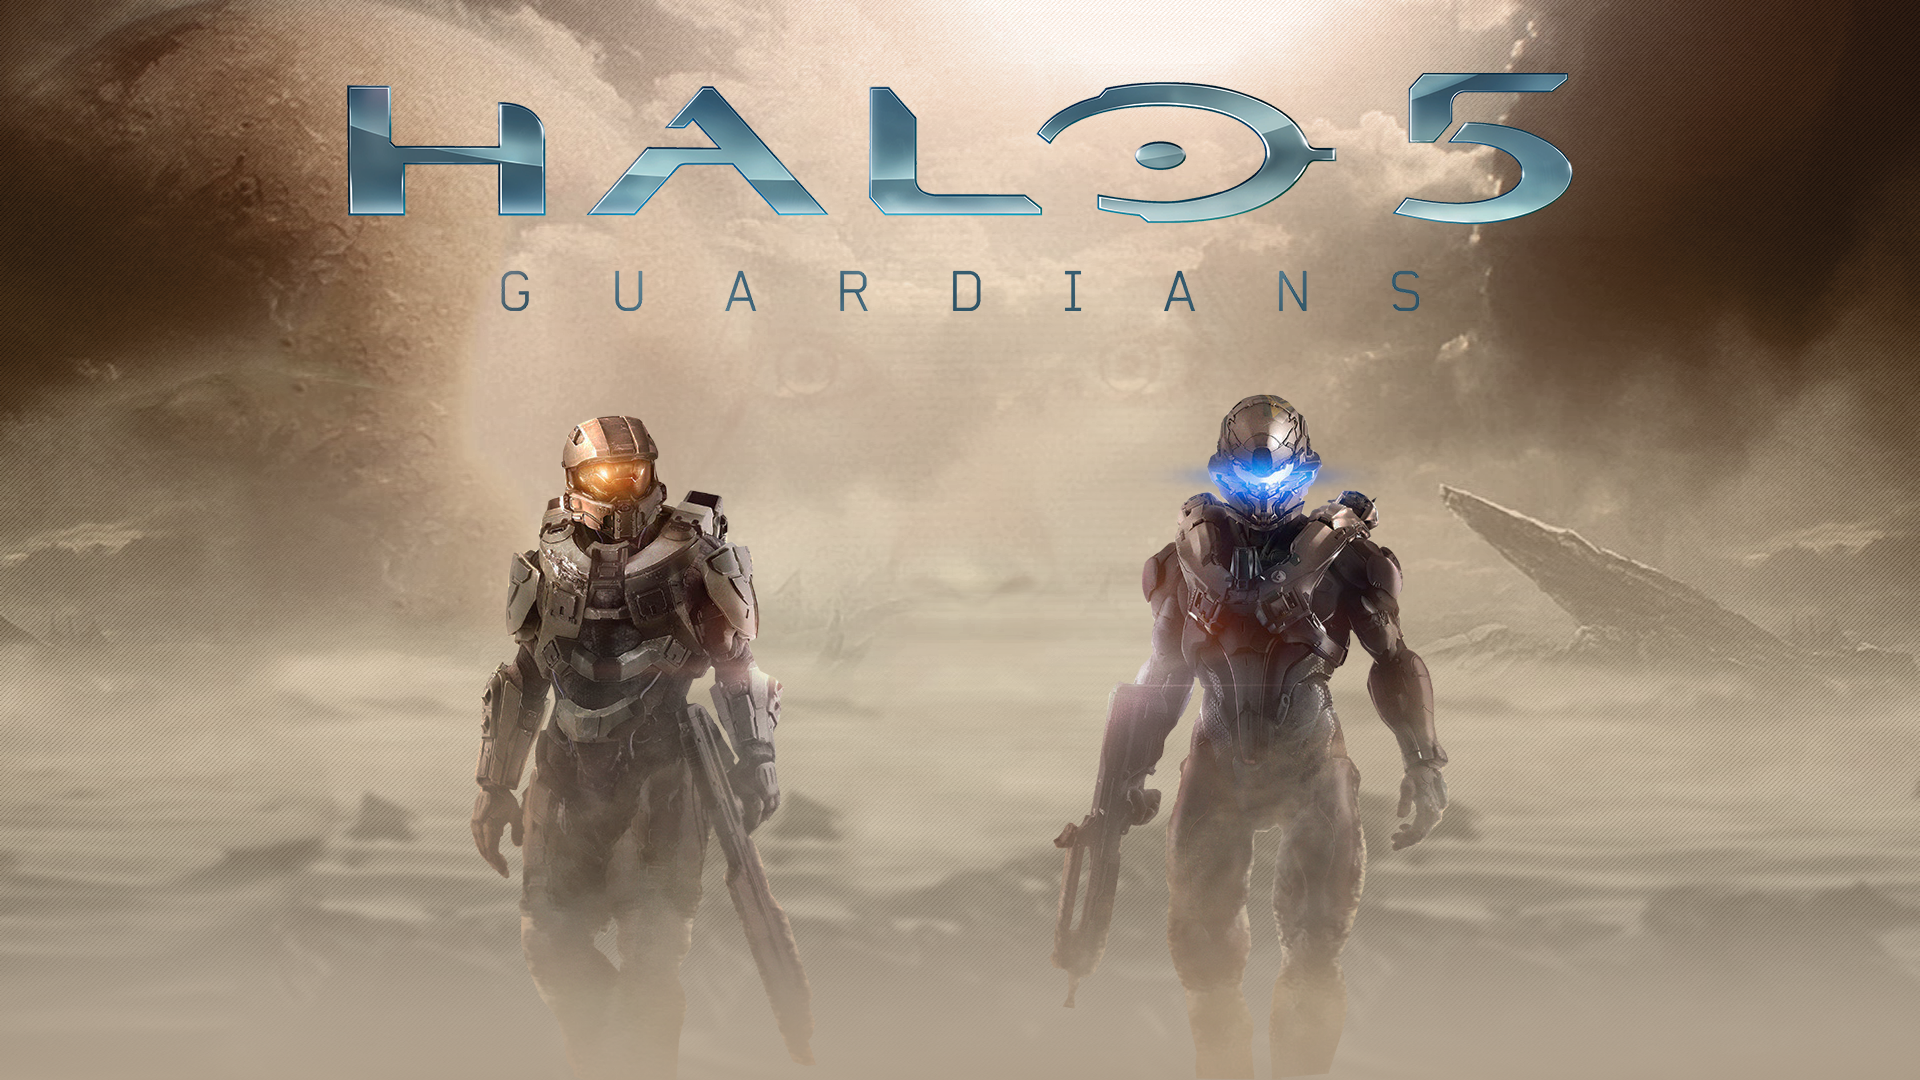 By Mellissa Glasgow - Halo 5 Guardians Wallpapers, 1920x1080 px